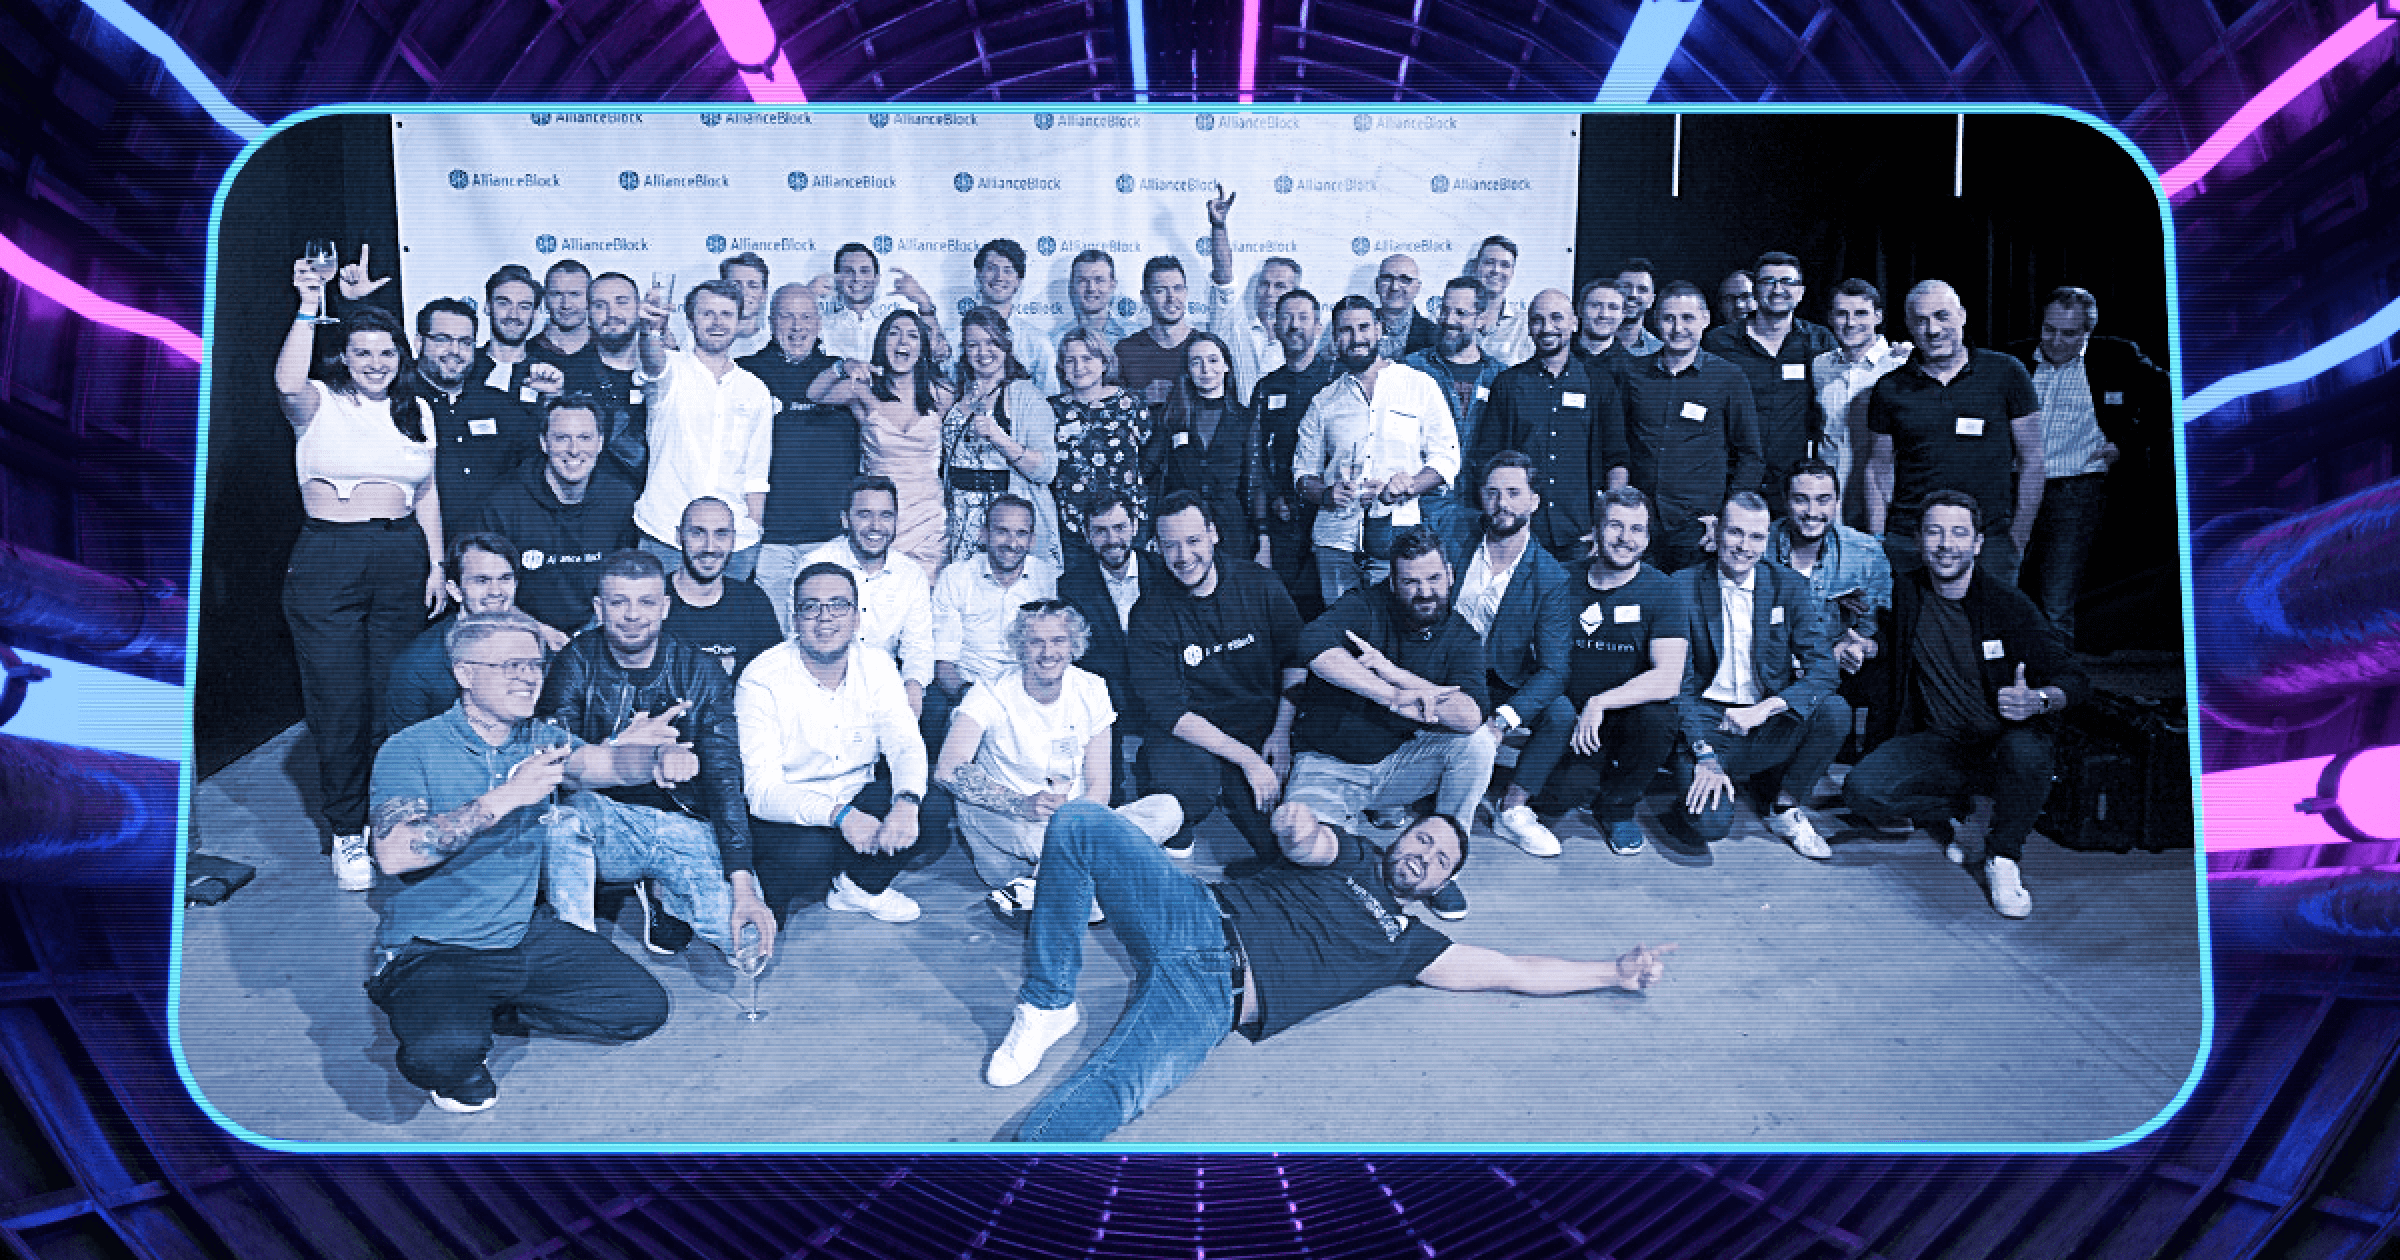 AllianceBlock team photo at the #WenZug event in Zug, Switzerland to celebrate the opening of our CryptoValley HQ.